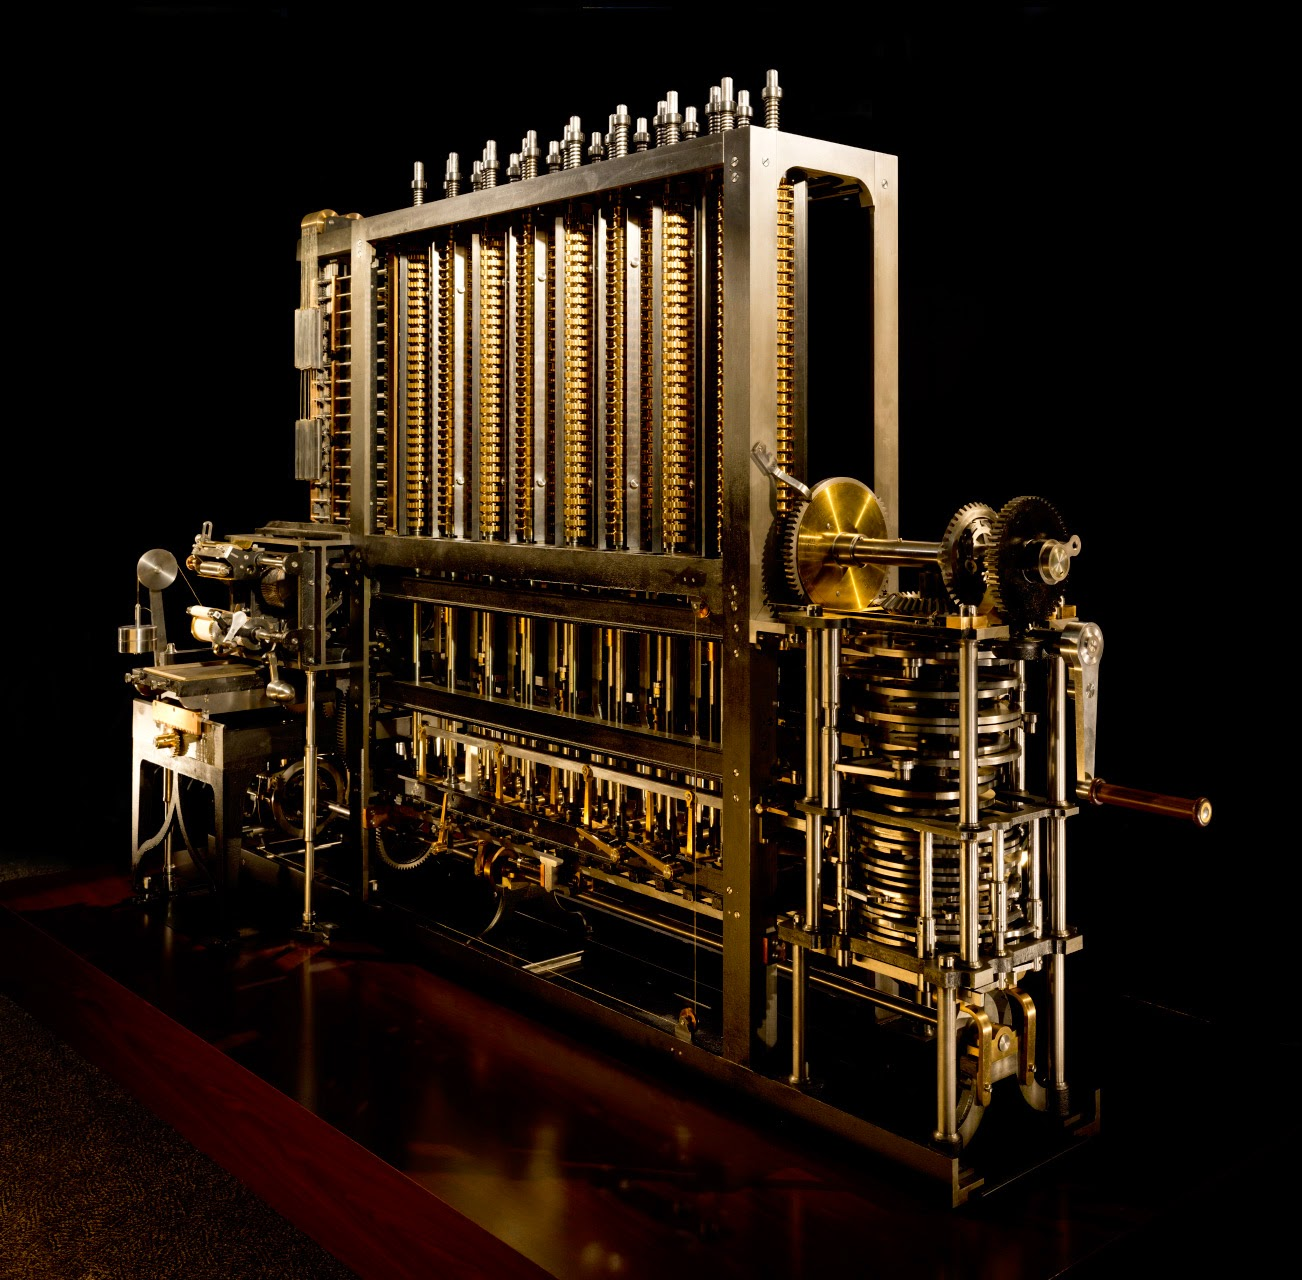 Wallpapers | Images | Picpile: What Babbage difference ...